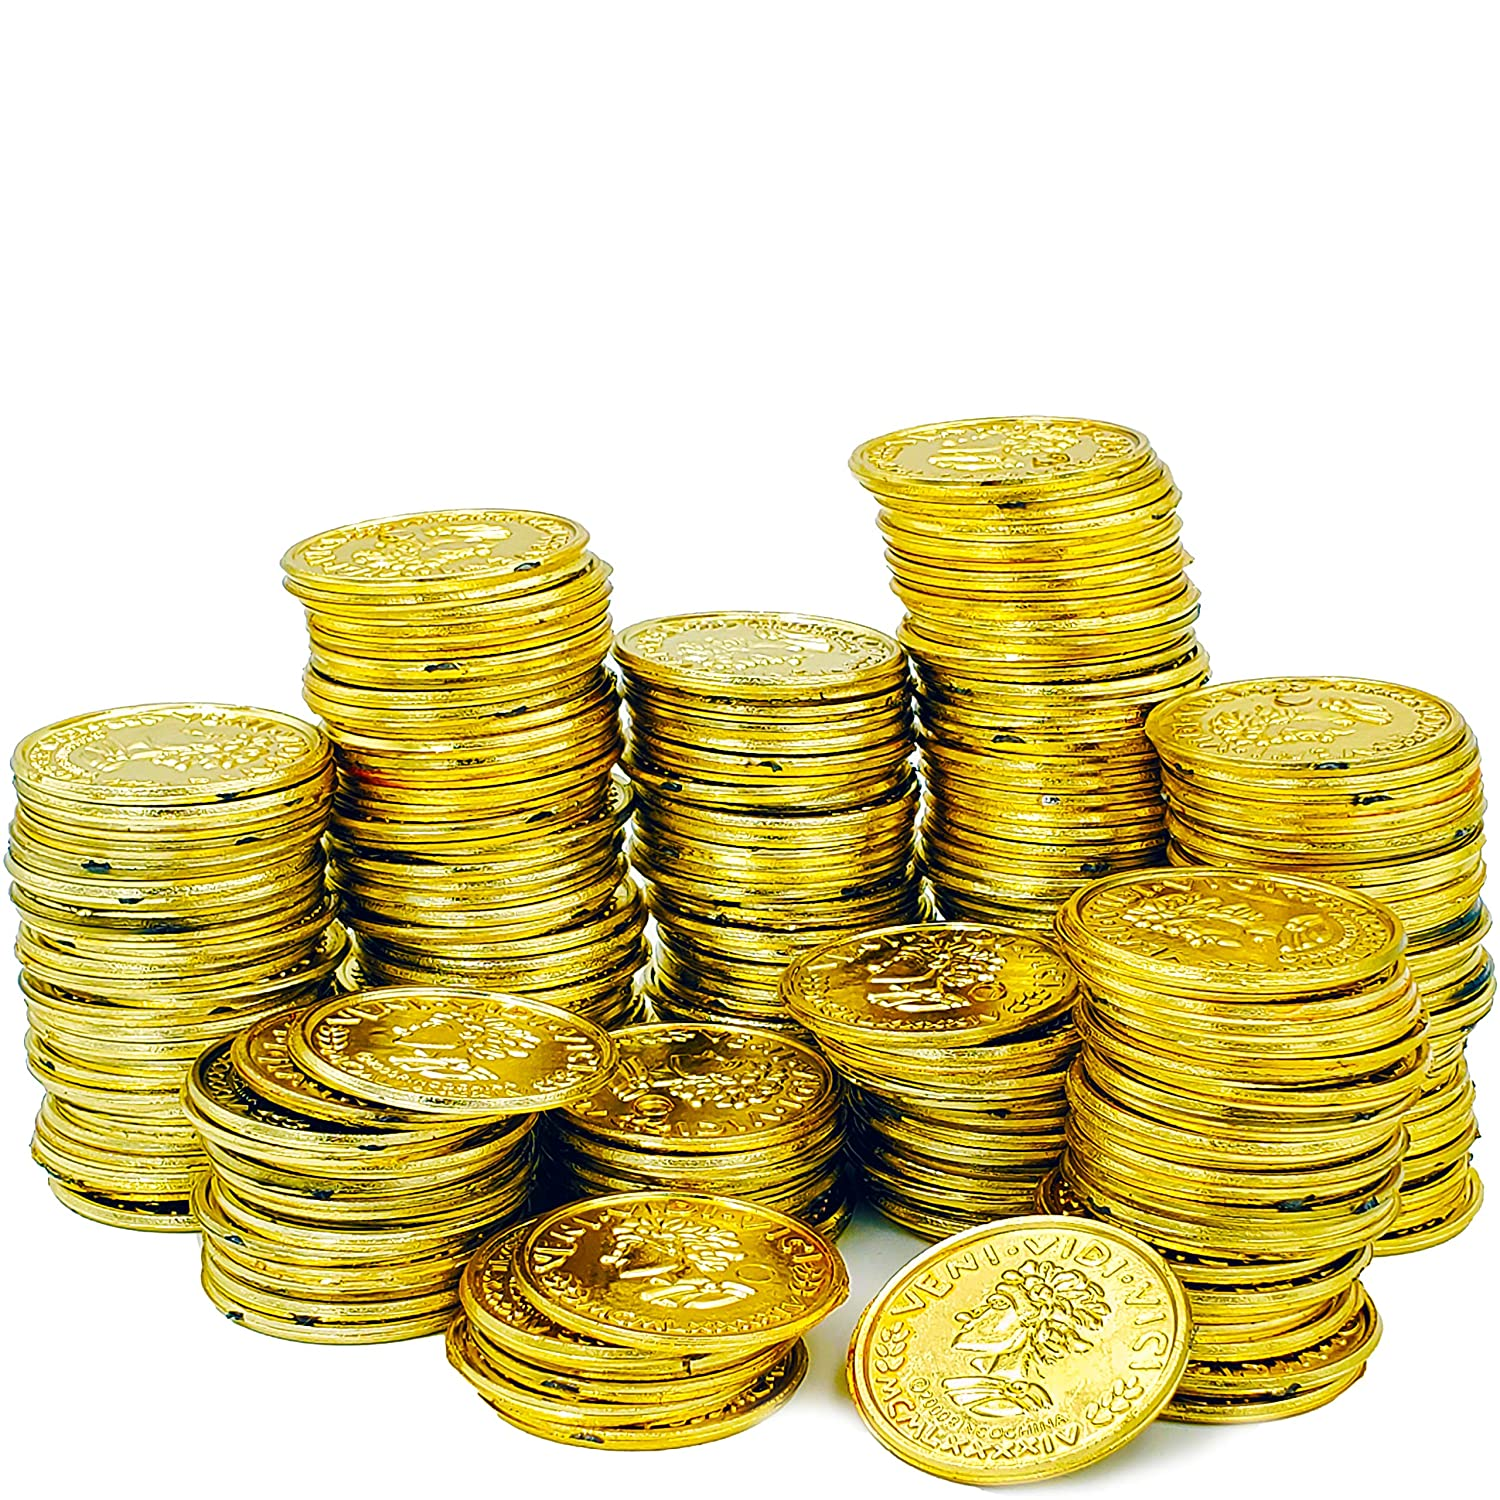 Money & Banking Patricks Plastic Gold Coins Novelty Party Favors ...